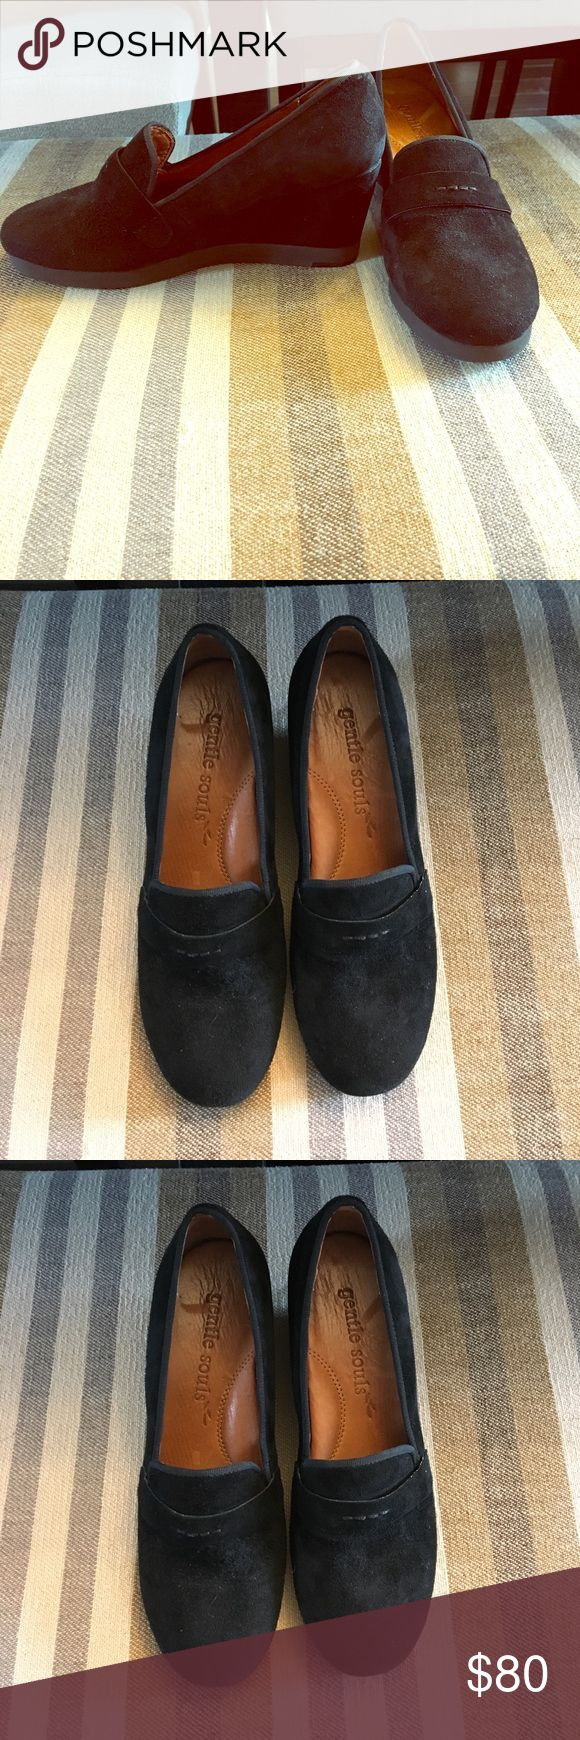 Gentle Souls Wedge Shoes Black, with leather in sole & lining, size 7M. Very comfortable with good arch support while at work. Worn only one time. In good condition. Gentle Souls Shoes Wedges